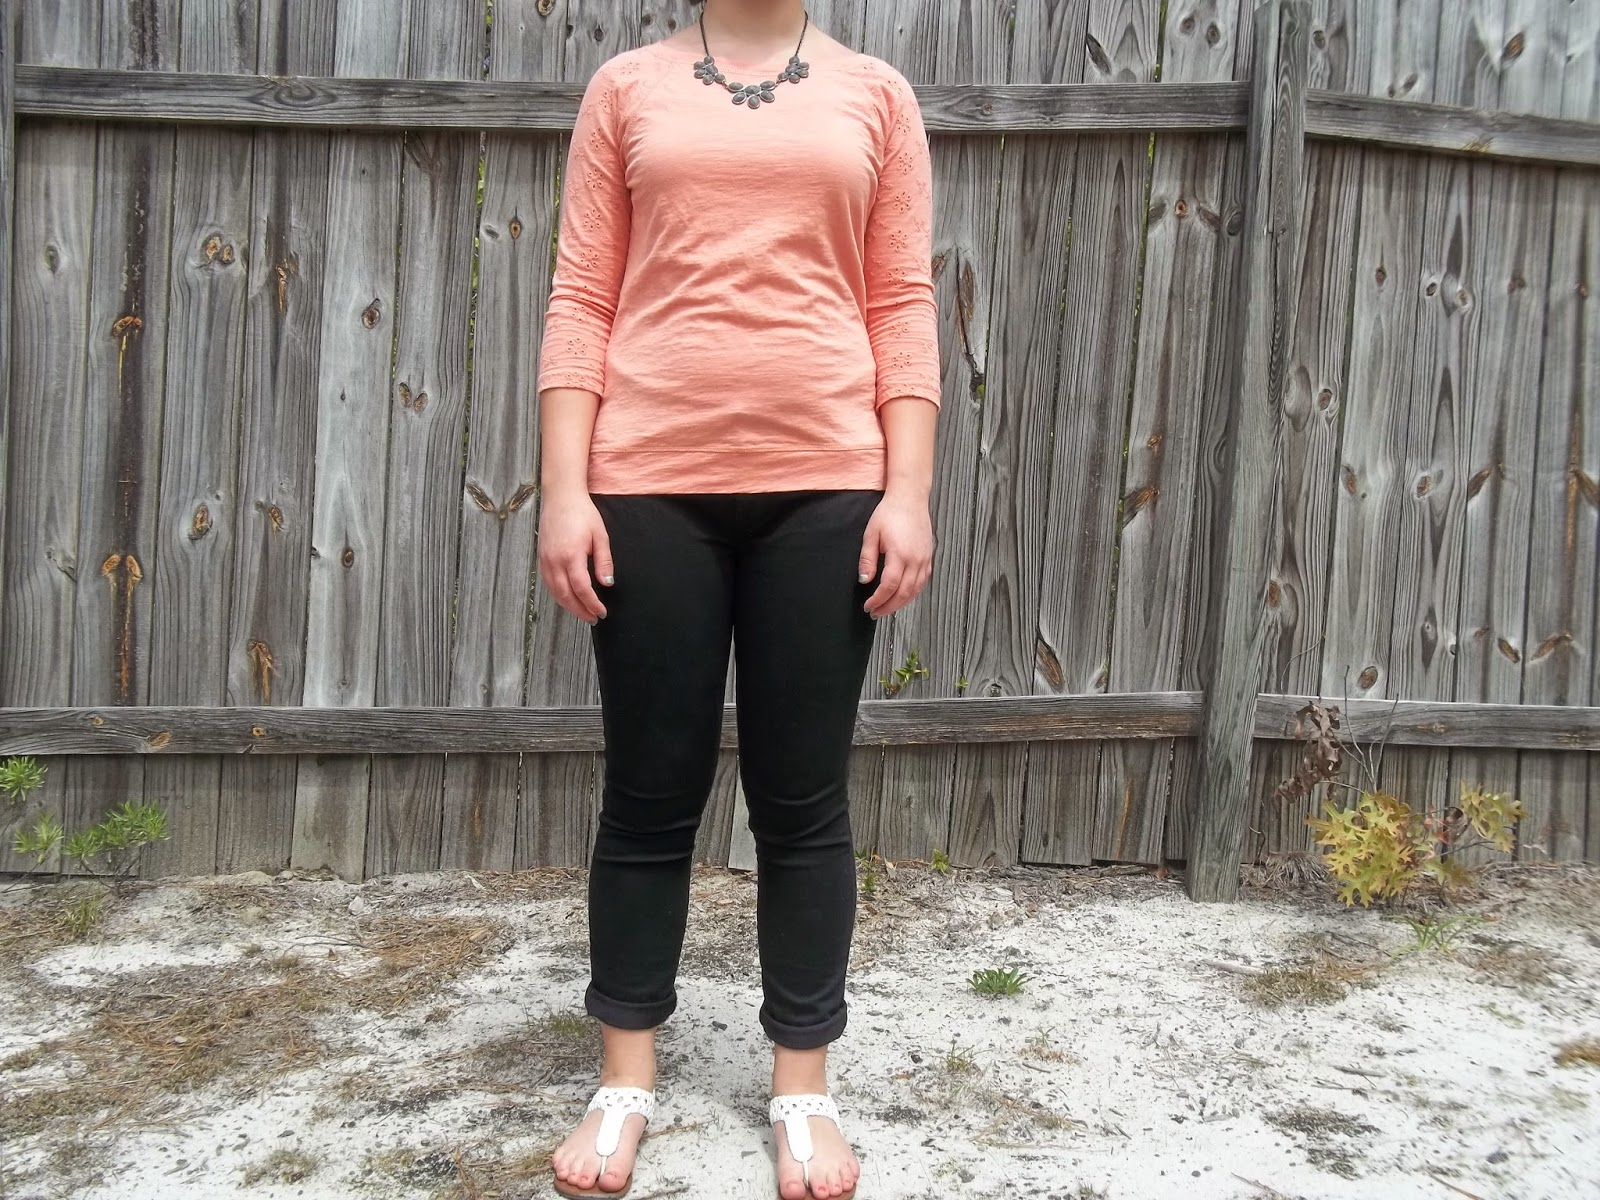 Peach and Grey. Peach eyelet top, black skinny jeans, grey statement necklace, white sandals. http://mybowsandclothes.blogspot.com. #peach #outfit #outfitpost #eyelet #BowsandClothes